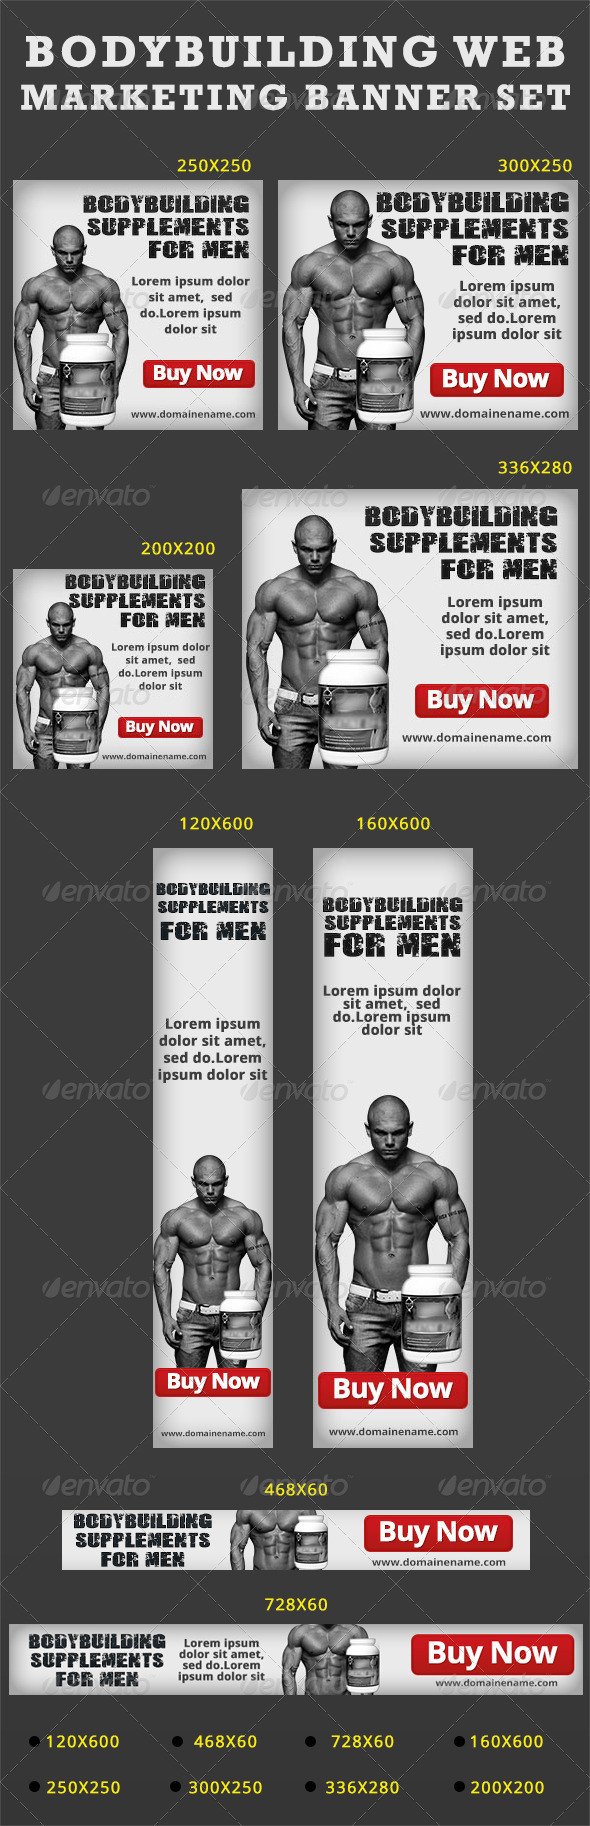 Bodybuilding Web Marketing Banner Set-White - Banners & Ads Web Elements